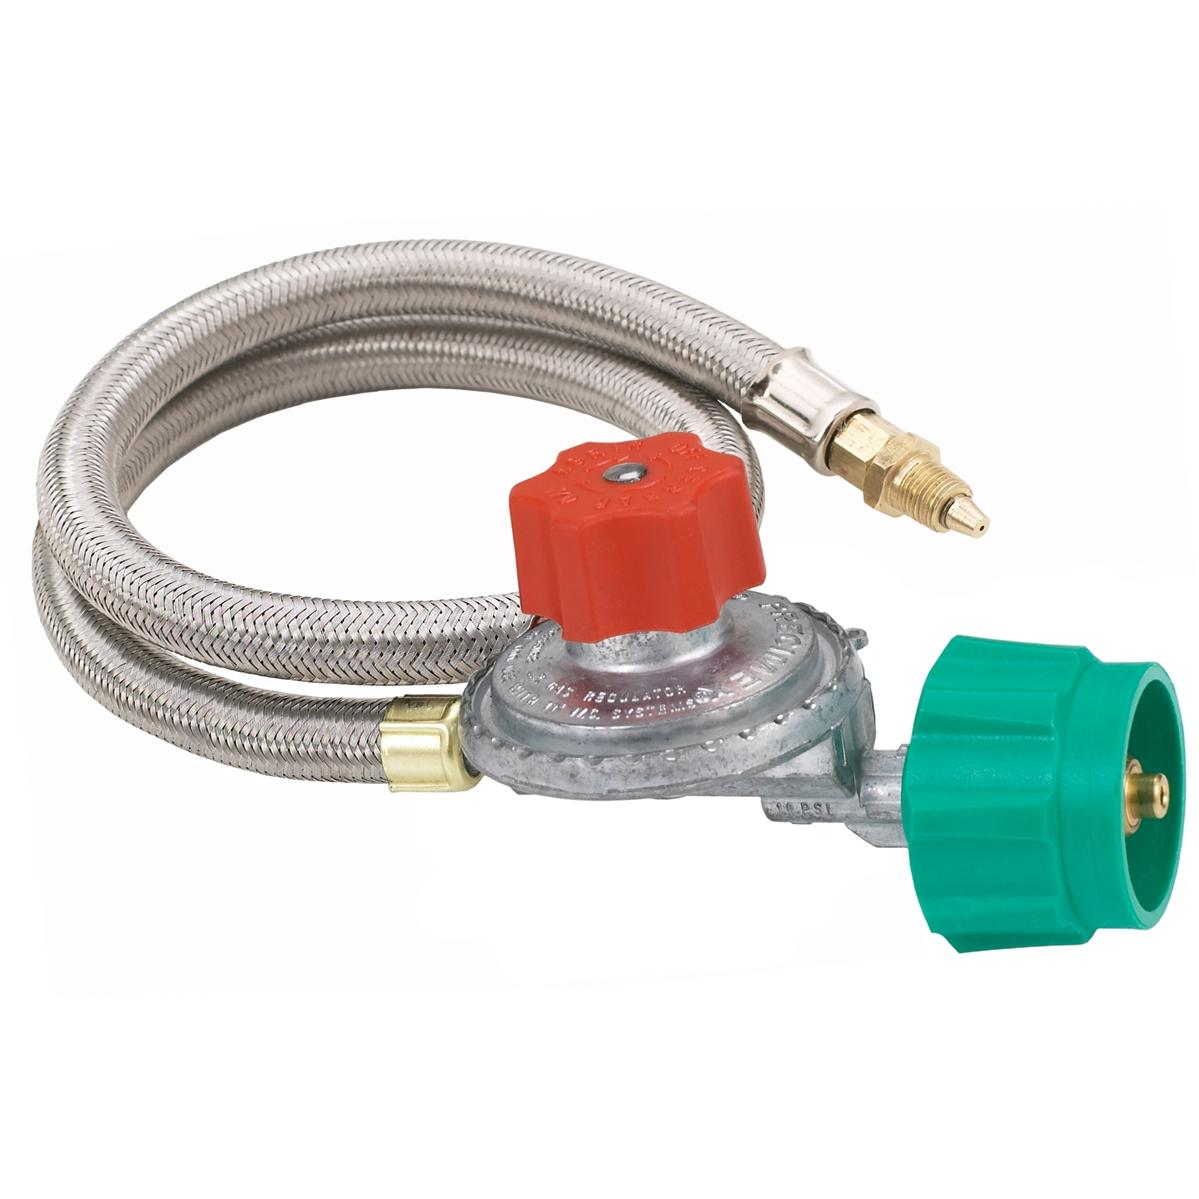 Bayou Classic 36 Inch High Pressure Stainless Braided Propane Hose And 10 PSI Adjustable Regulator